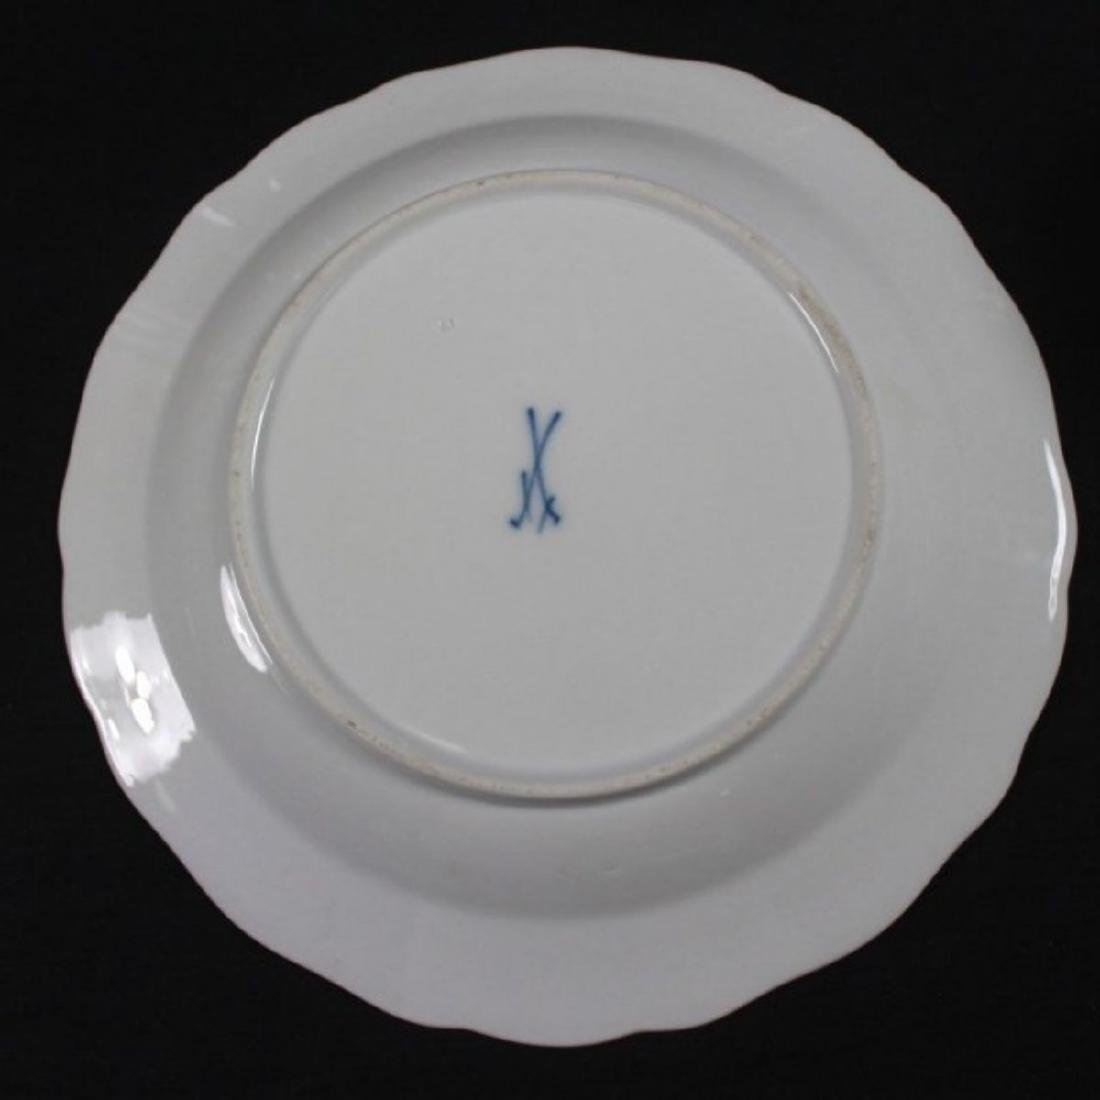 19TH C MEISSEN PART DINER SERVICE WITH THE UNDER GLAZED - 9